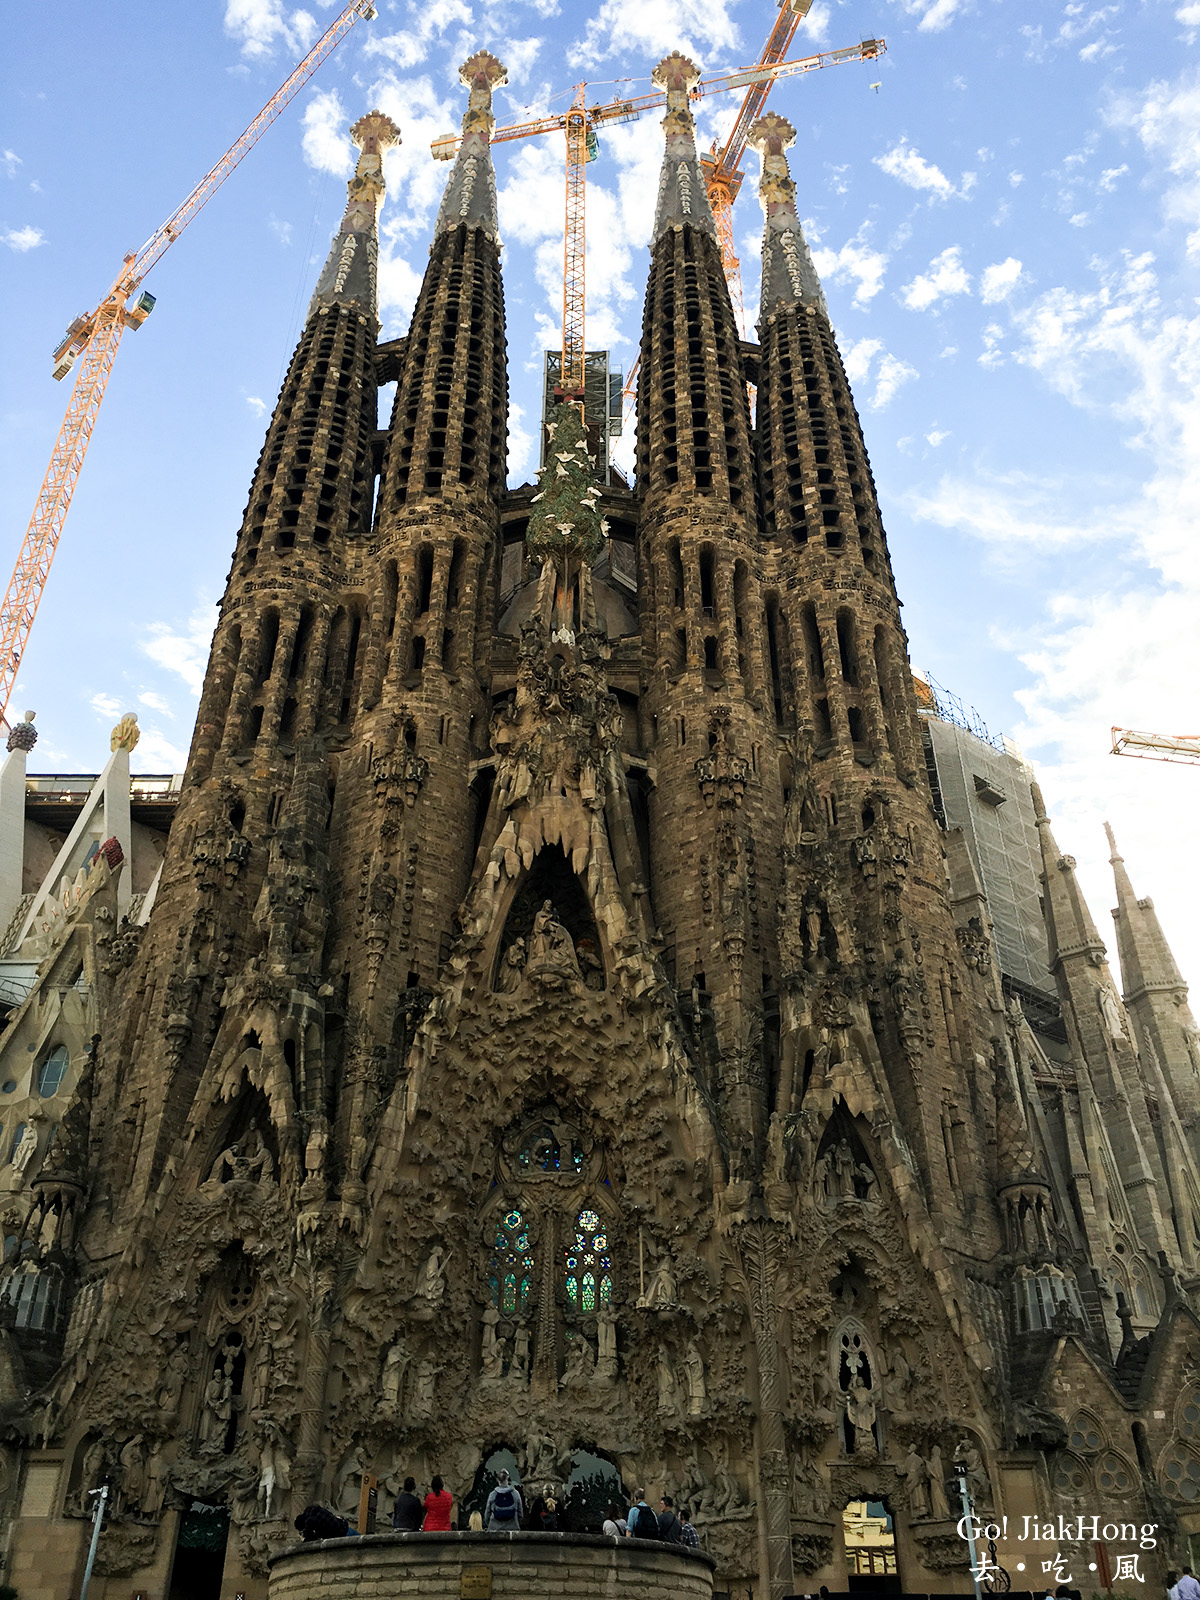 See spain barcelona sagrada familia go jiakhong for Barcelona famila